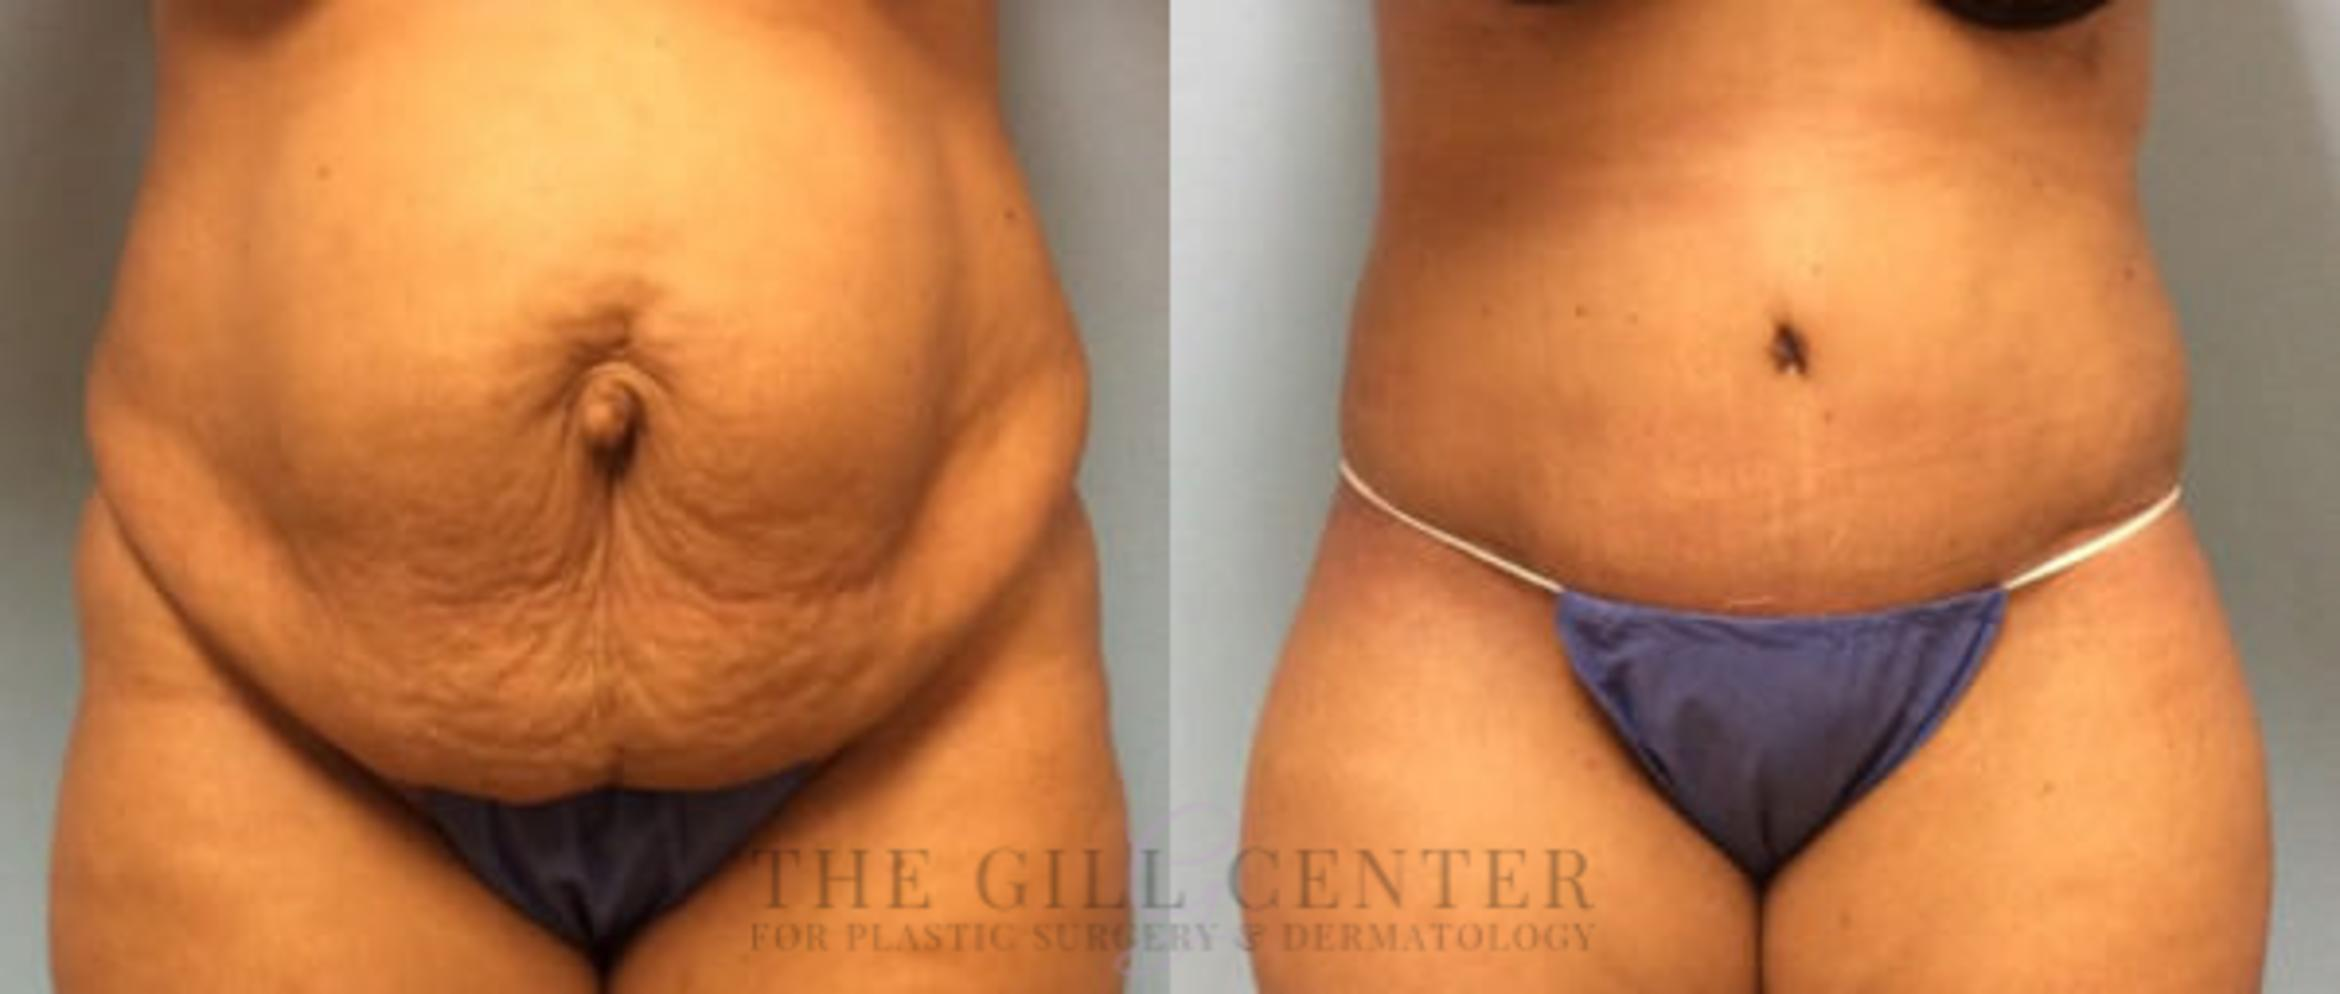 Tummy Tuck Case 196 Before & After Front | Shenandoah, TX | The Gill Center for Plastic Surgery and Dermatology